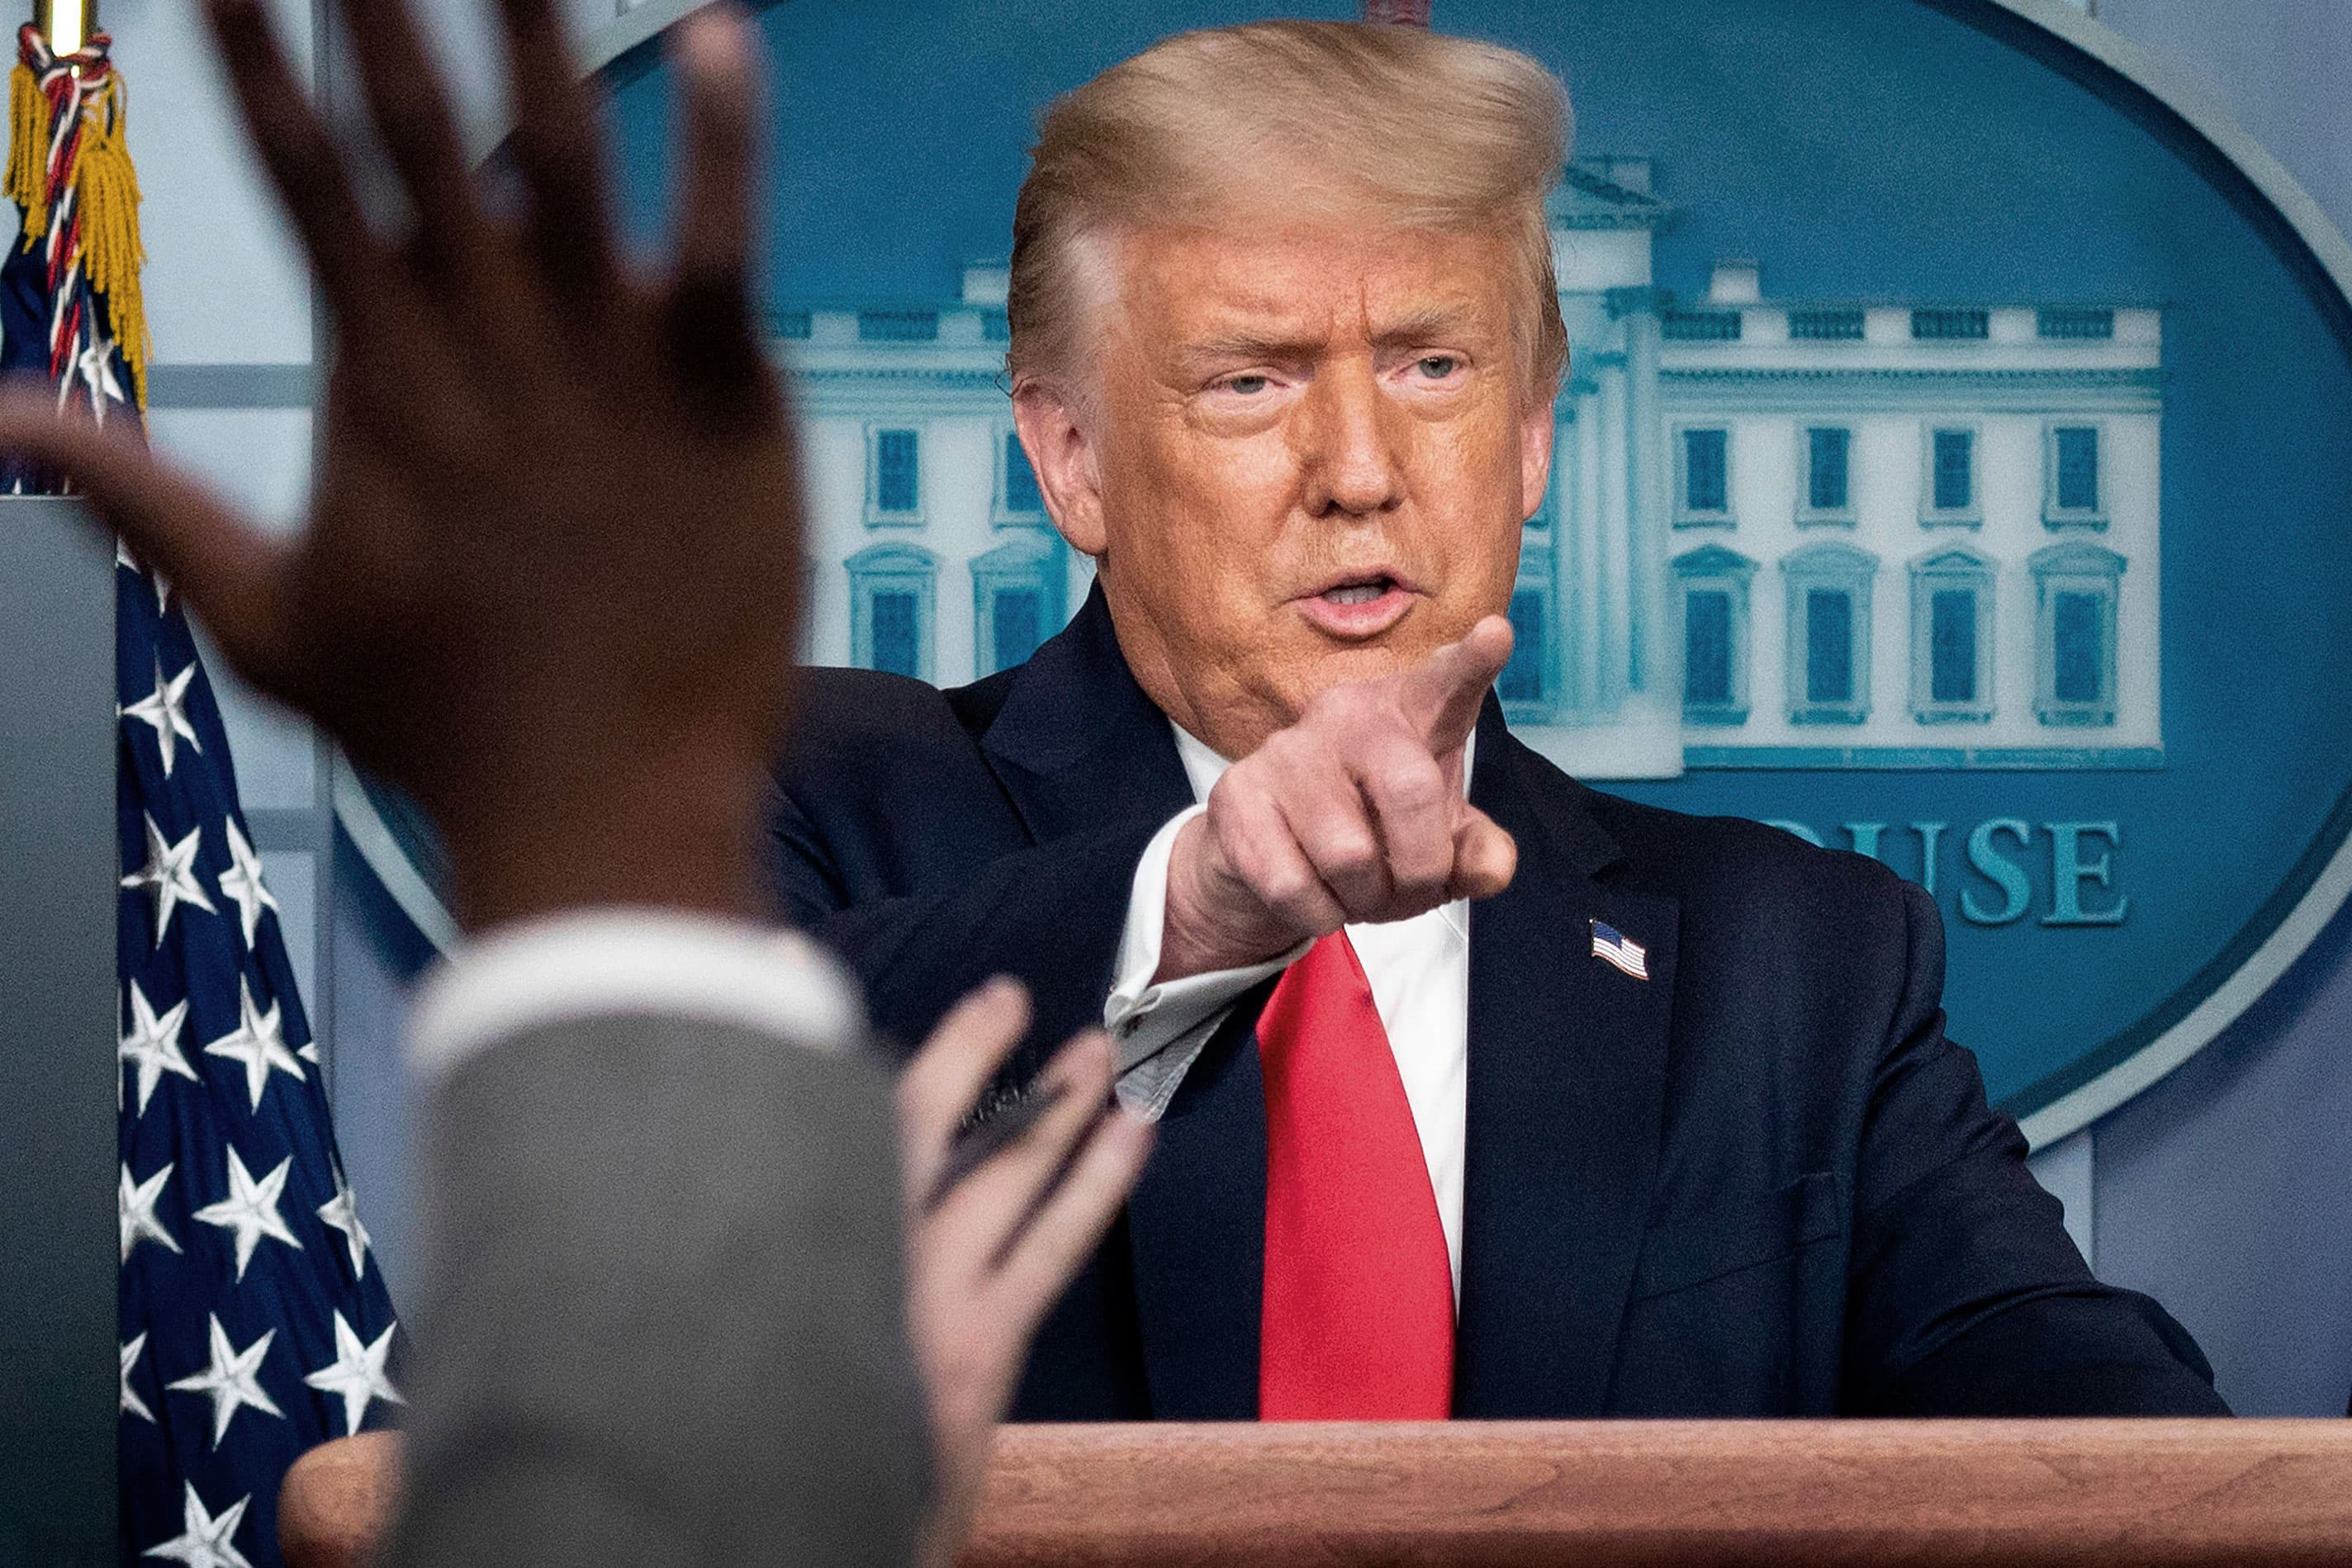 Trump says he still thinks hydroxychloroquine works in treating early stage coronavirus